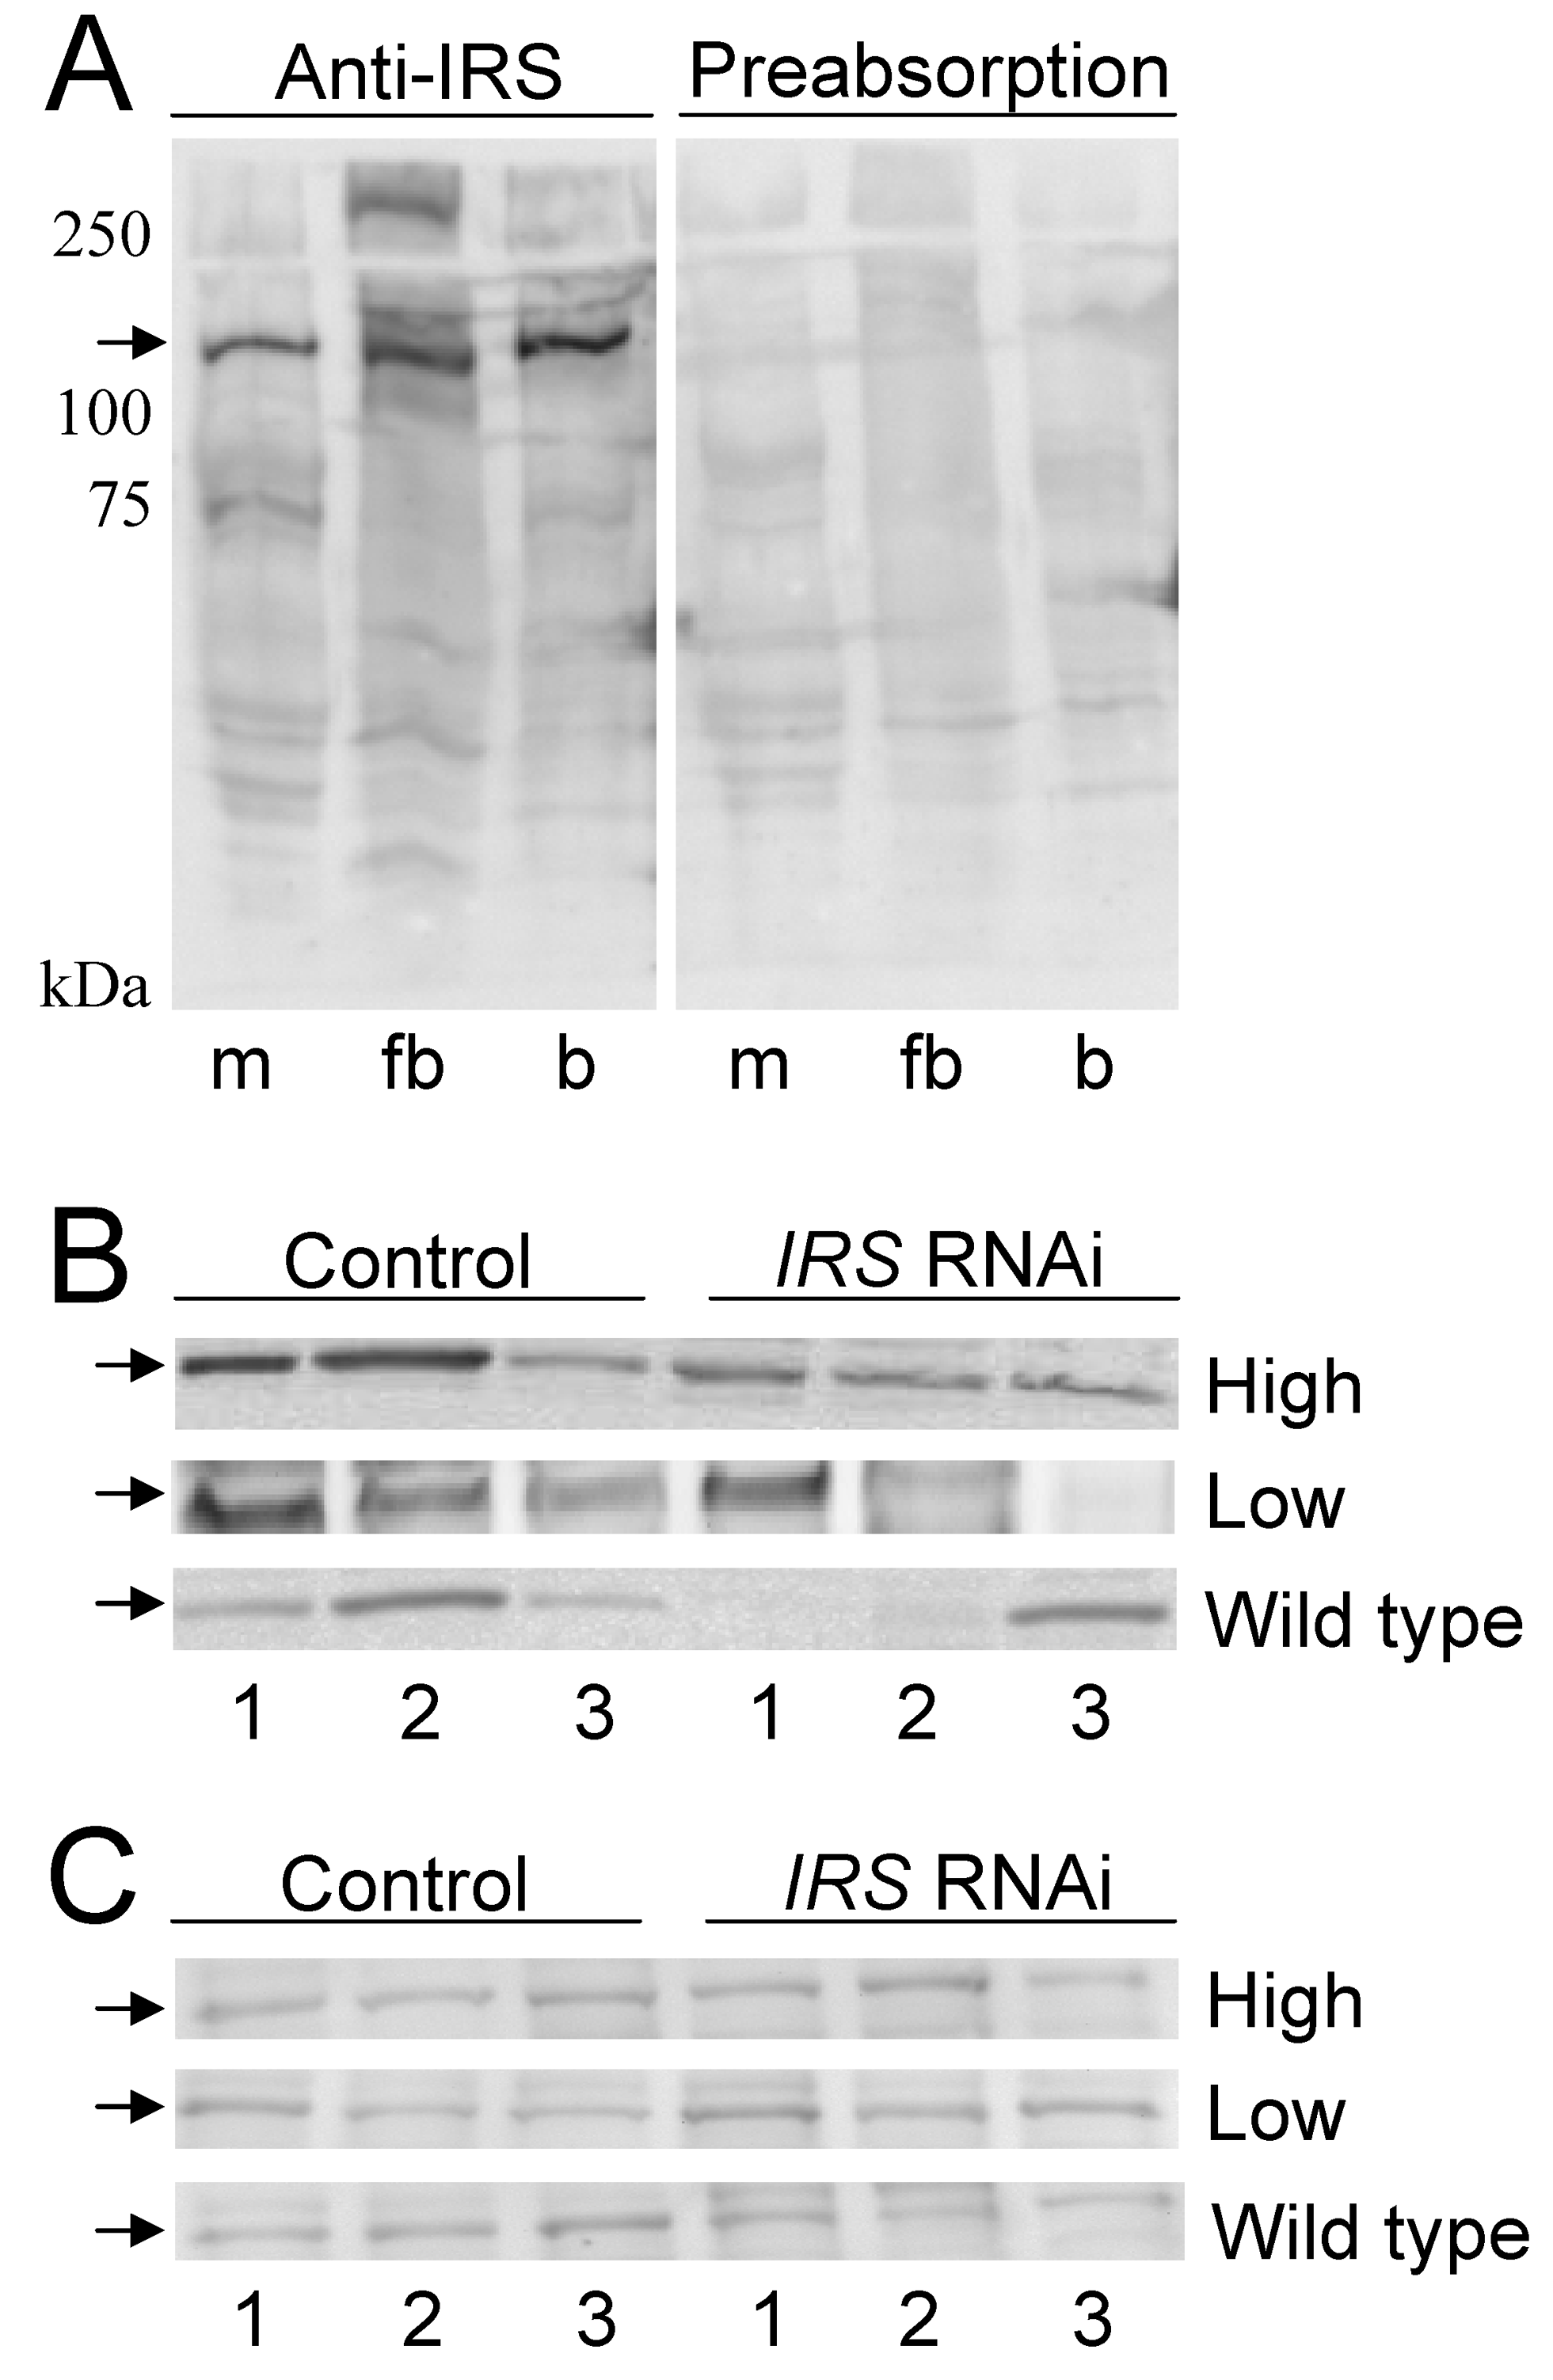 Western blot assessment of peripheral IRS knockdown.